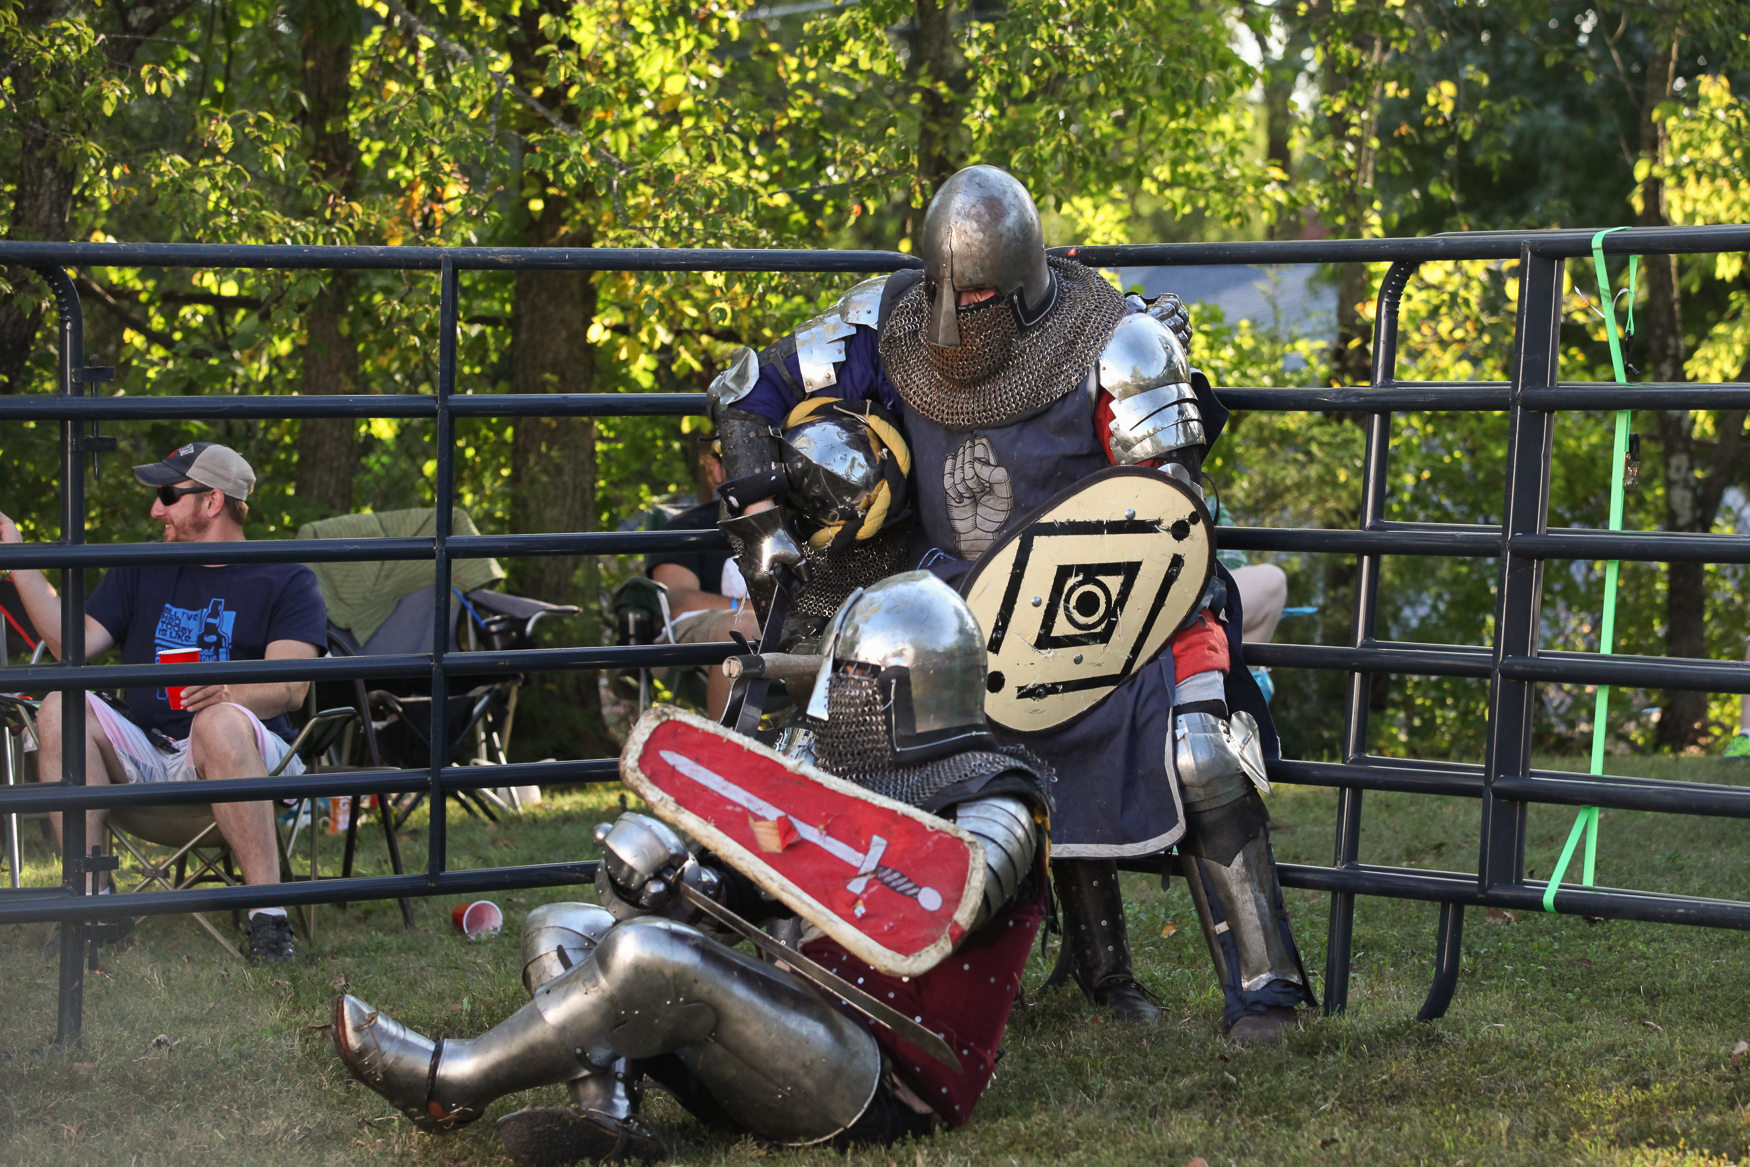 You make think that fighting in suits of armor is reserved for extremely enthusiastic Renn faire-goers or extras on Game of Thrones. However, if you happened to stop by the Fort Drive Community Center in Alexandria, VA, on Saturday, September 29, you might have been forced to change your opinion. Over a dozen men and women from D.C., Maryland, North Carolina and Pennsylvania were battling each other in suits of armor. Those men and women belong to the Armored Combat League, a national organization which gives participants the chance to competitively fight each other with medieval weaponry. The sport isn't without risk - the training is intense and the injuries are frequent. However, all the competitors say they wouldn't change it for anything. (Amanda Andrade-Rhoades/DC Refined)